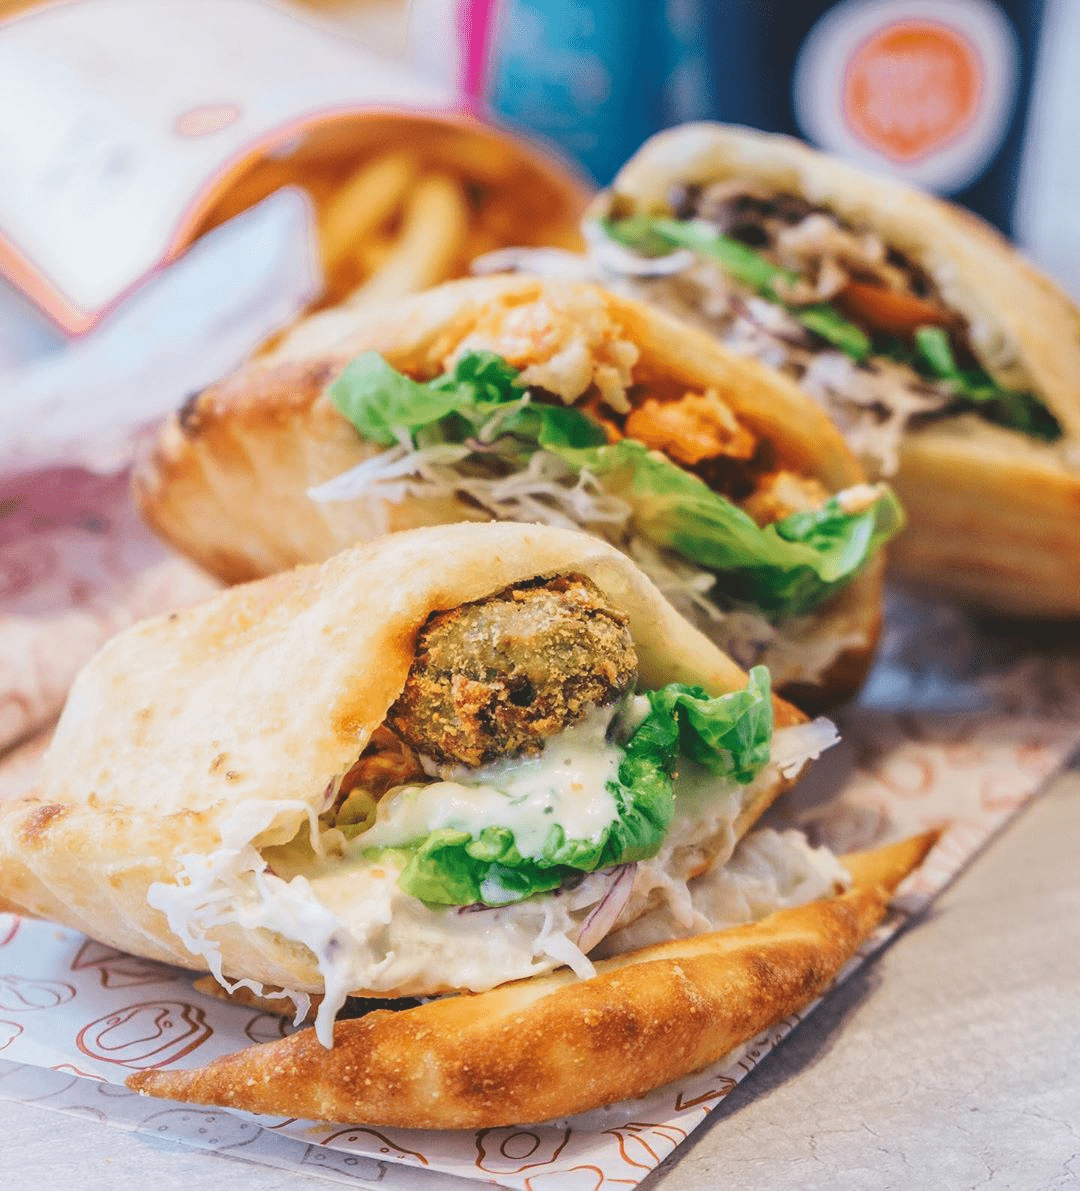 8 New Food Finds In Singapore That Could Be The Next Viral